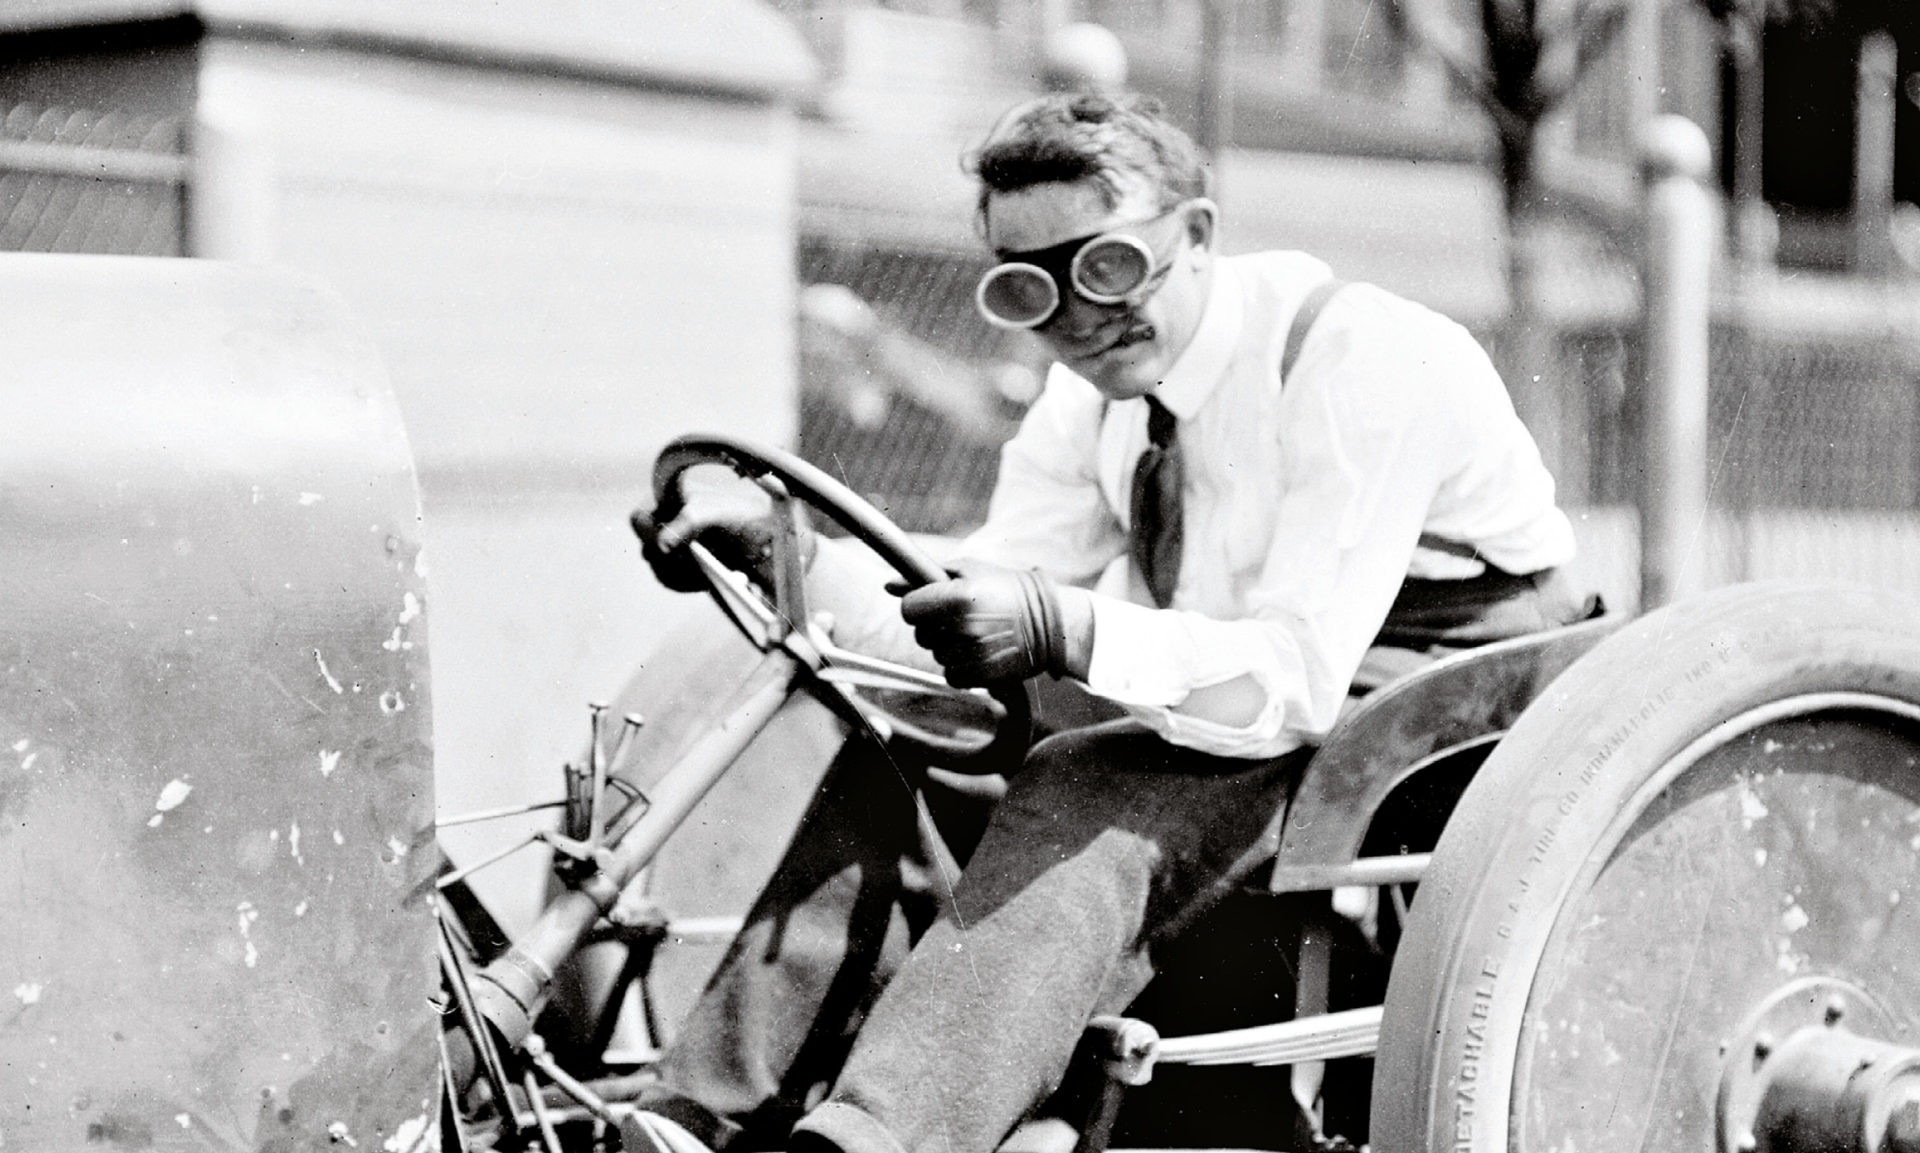 Barney Oldfield's legacy includes inspiring many young drivers, including Karl Kimball